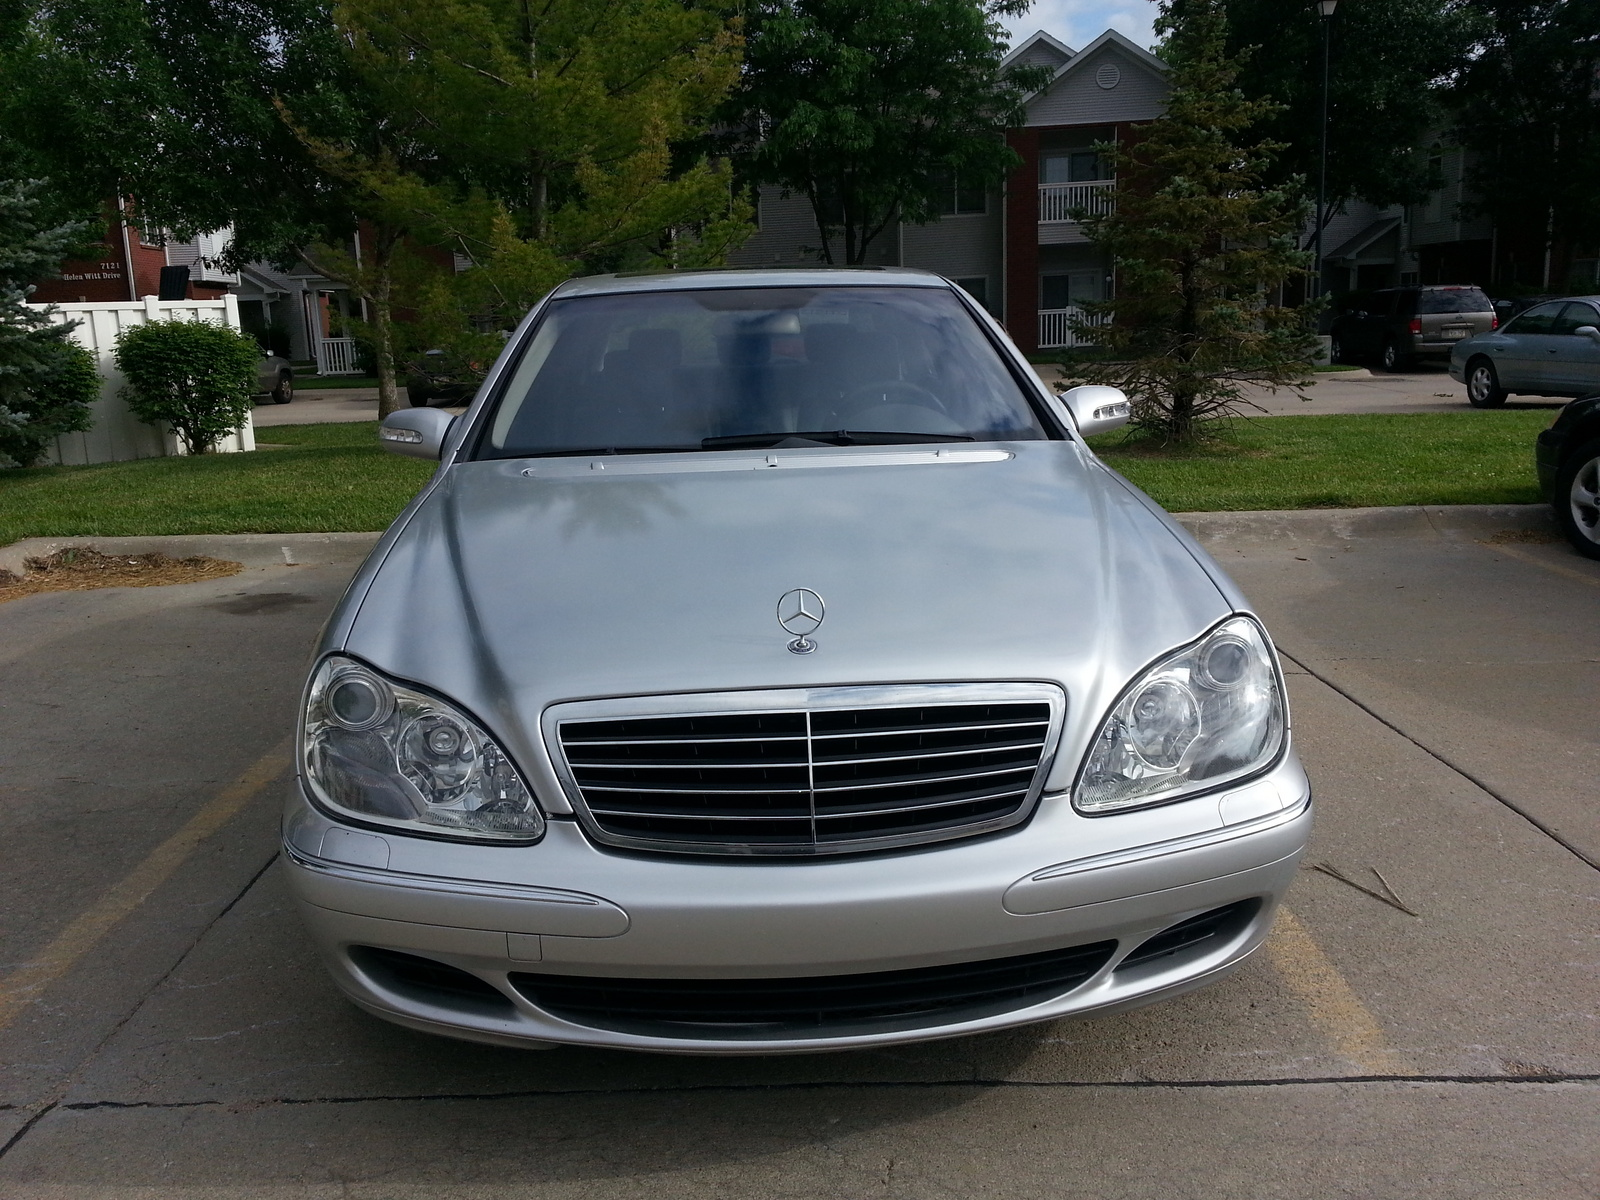 2006 mercedes benz s class exterior pictures cargurus for 2006 mercedes benz s350 review